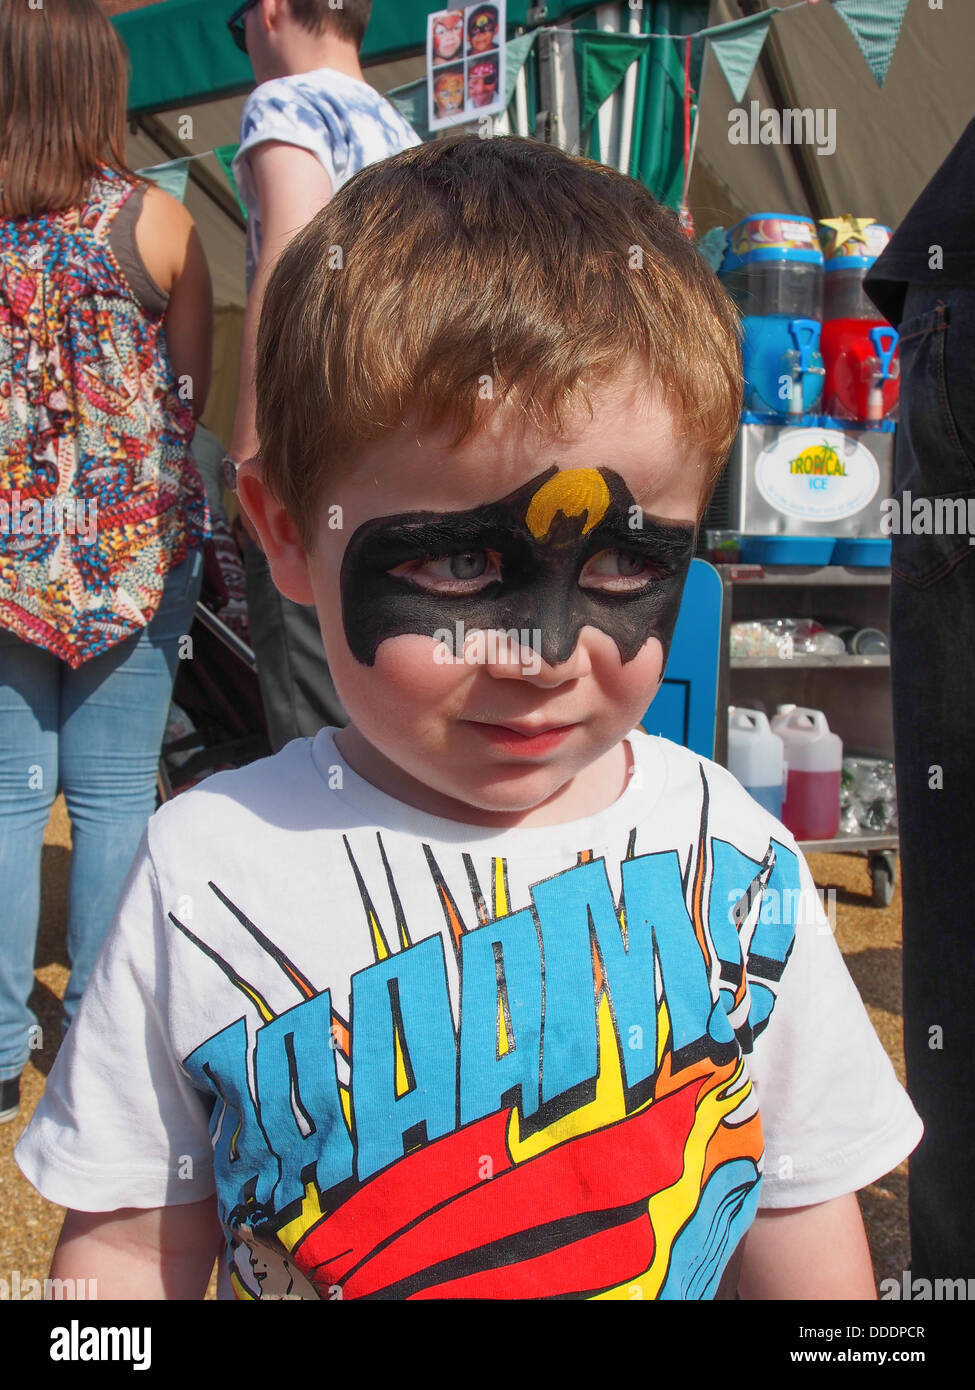 Young boy with superhero face paint at a summer festival - Stock Image